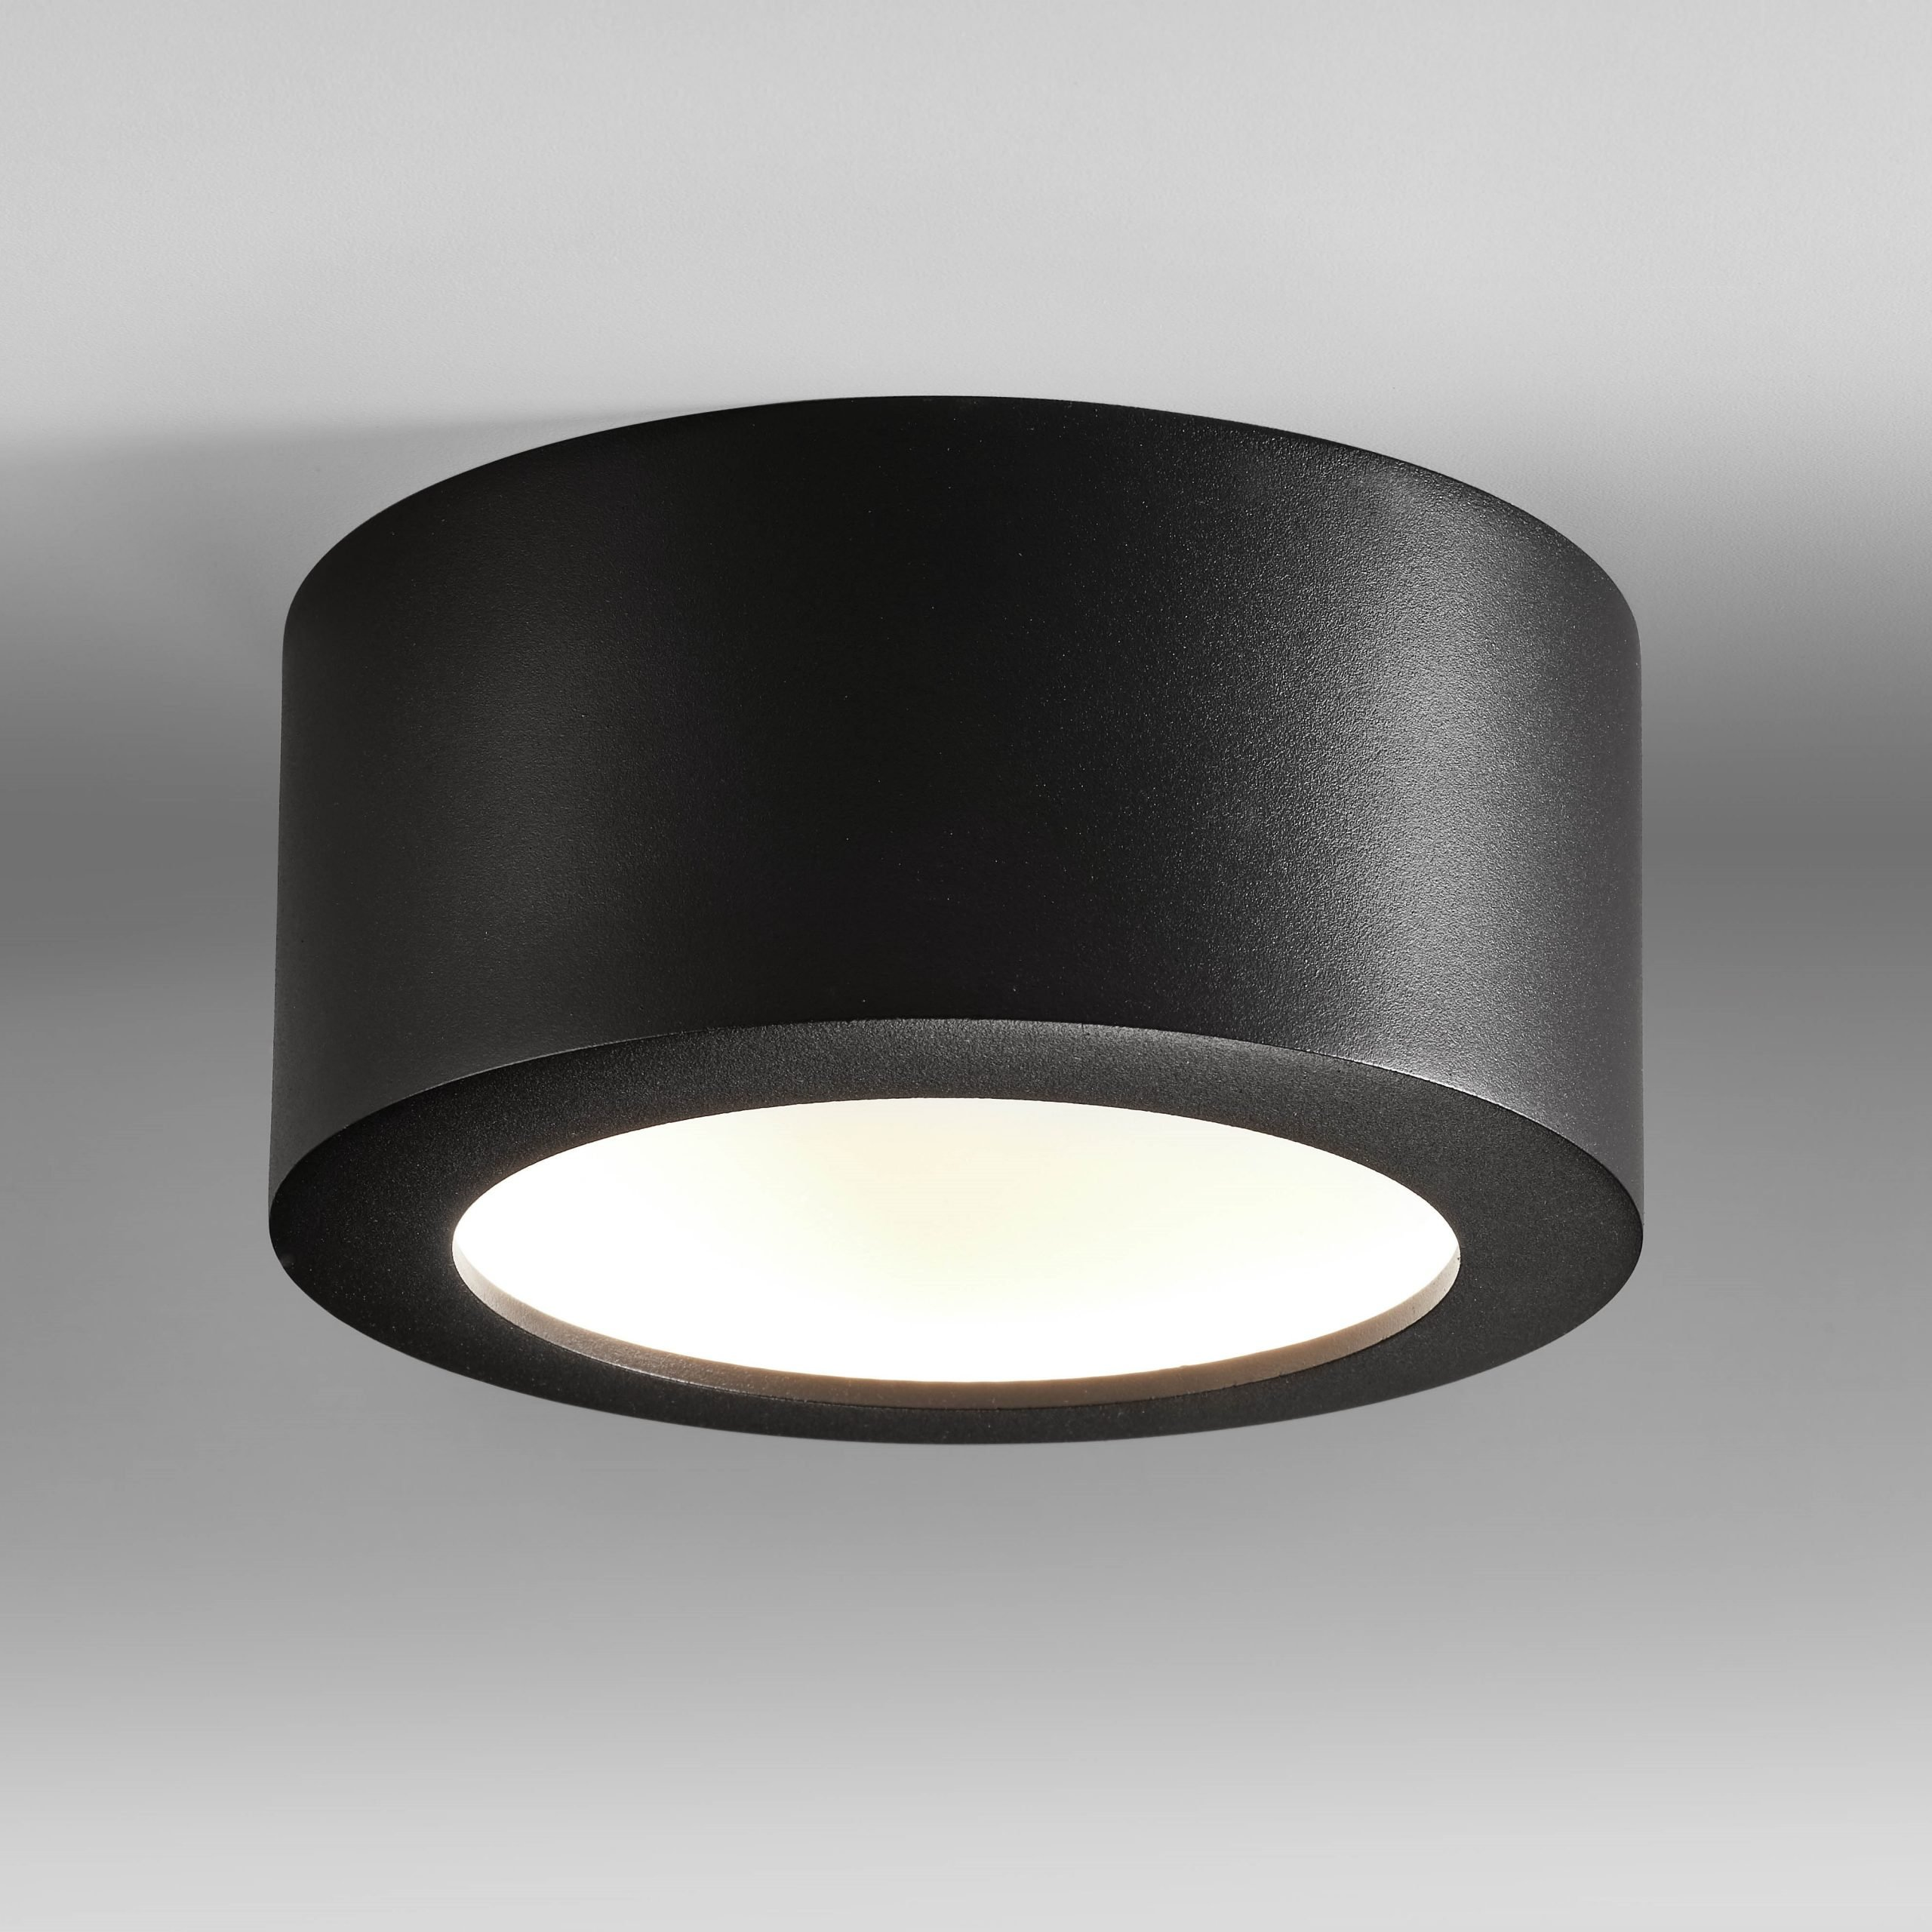 Plafondlamp Bowl Zwart Medium